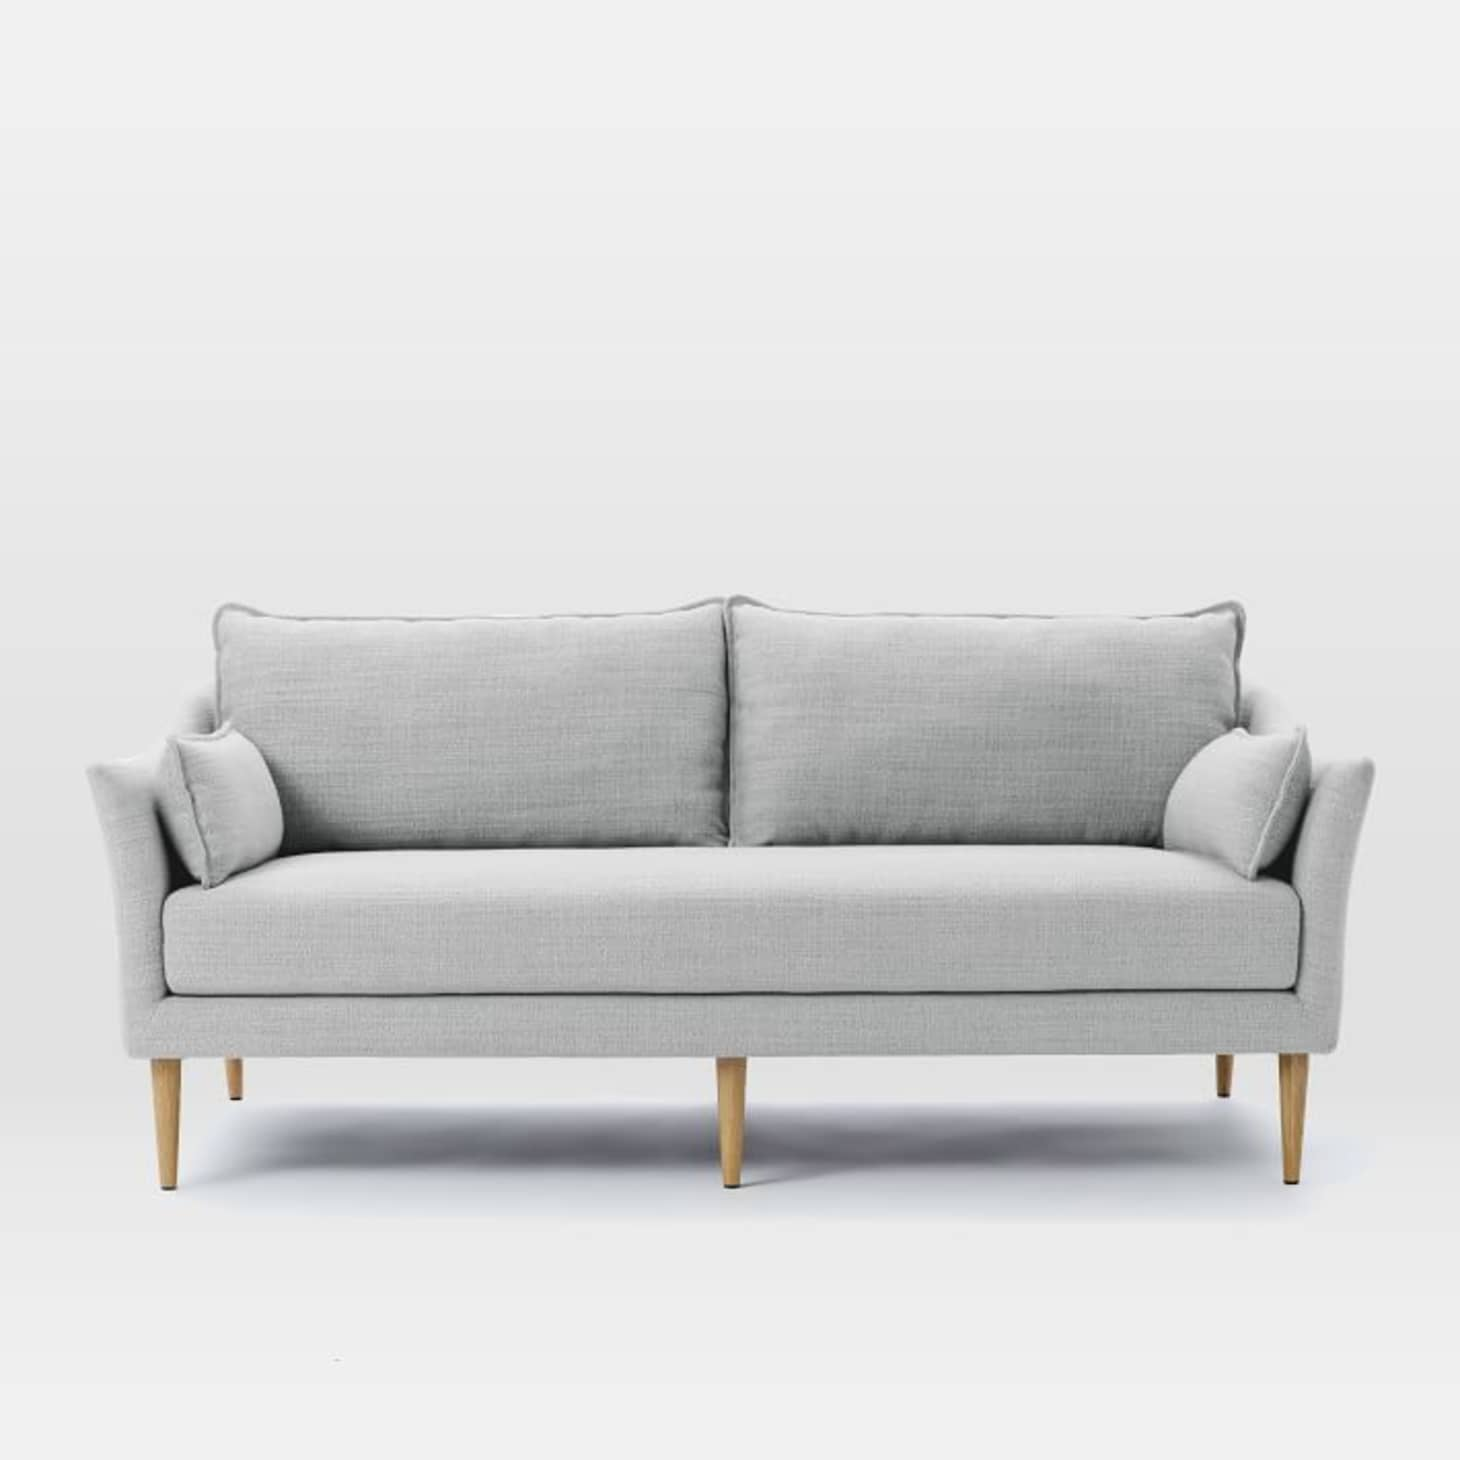 Superb The Most Comfortable Sofas At West Elm Tested Reviewed Pdpeps Interior Chair Design Pdpepsorg